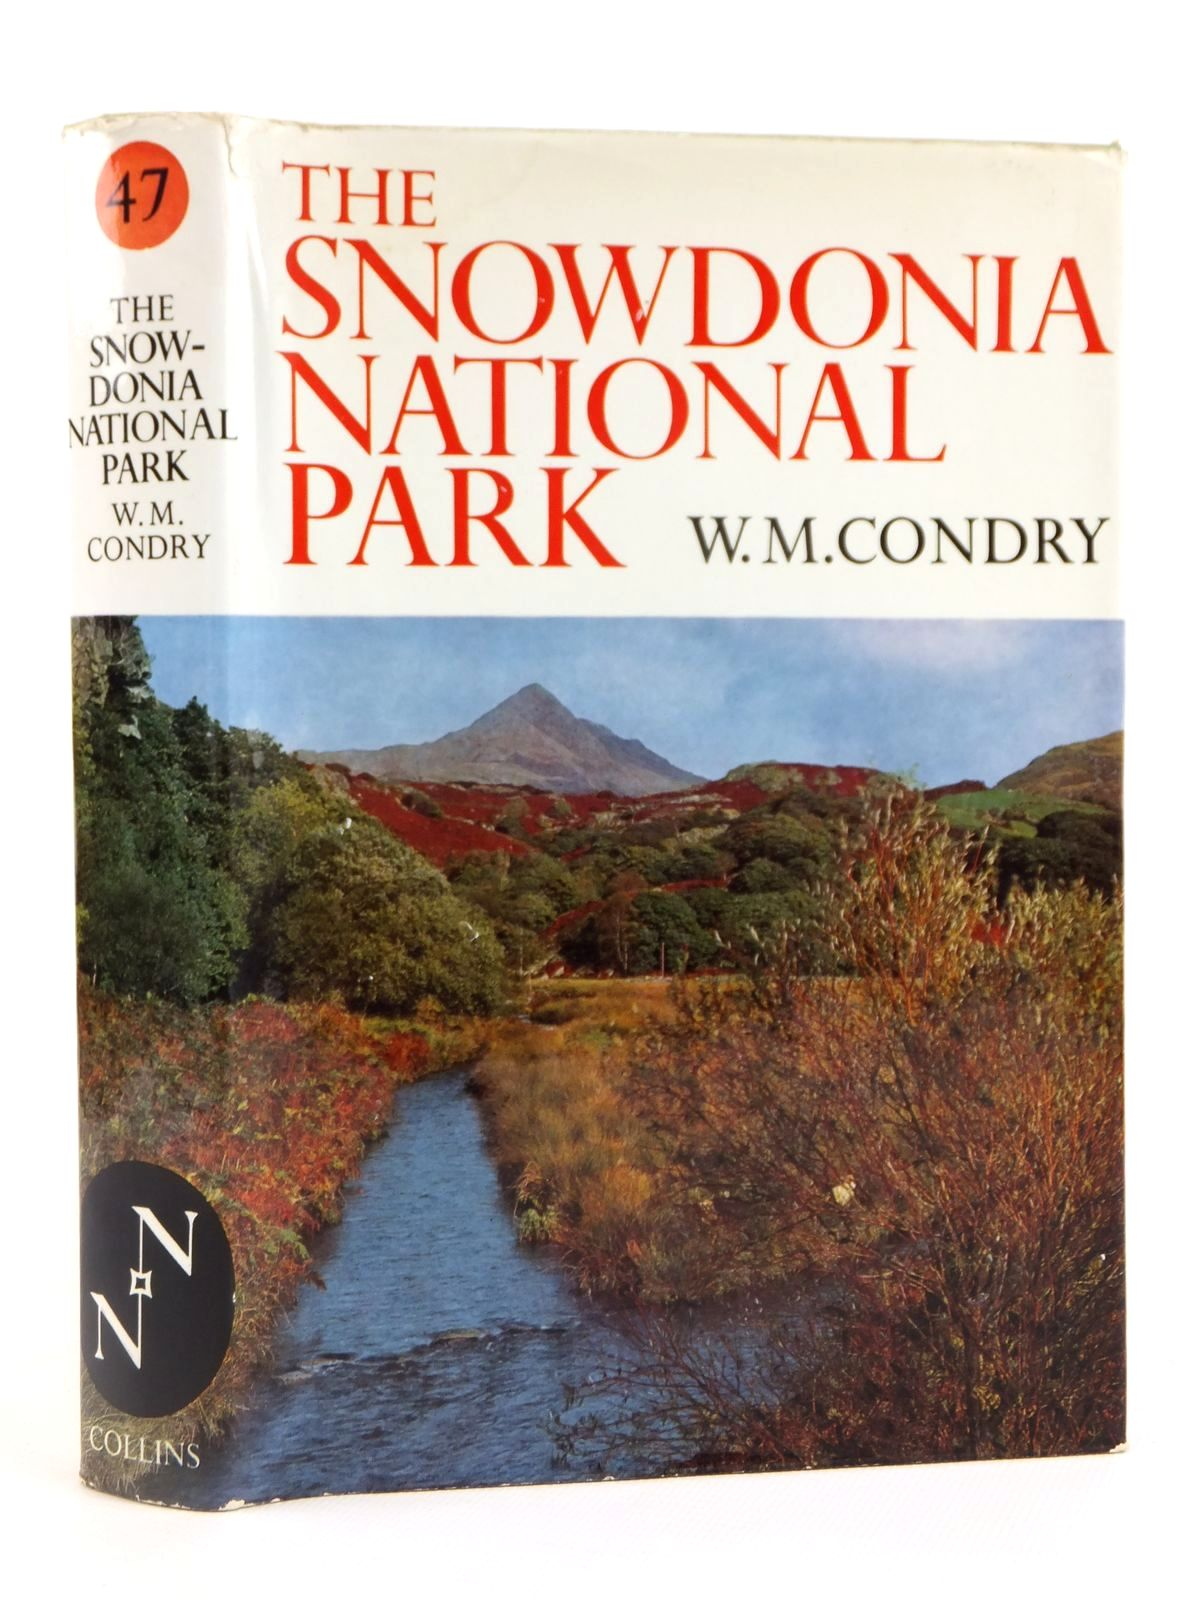 Photo of THE SNOWDONIA NATIONAL PARK (NN 47) written by Condry, William M. published by Collins (STOCK CODE: 1608470)  for sale by Stella & Rose's Books